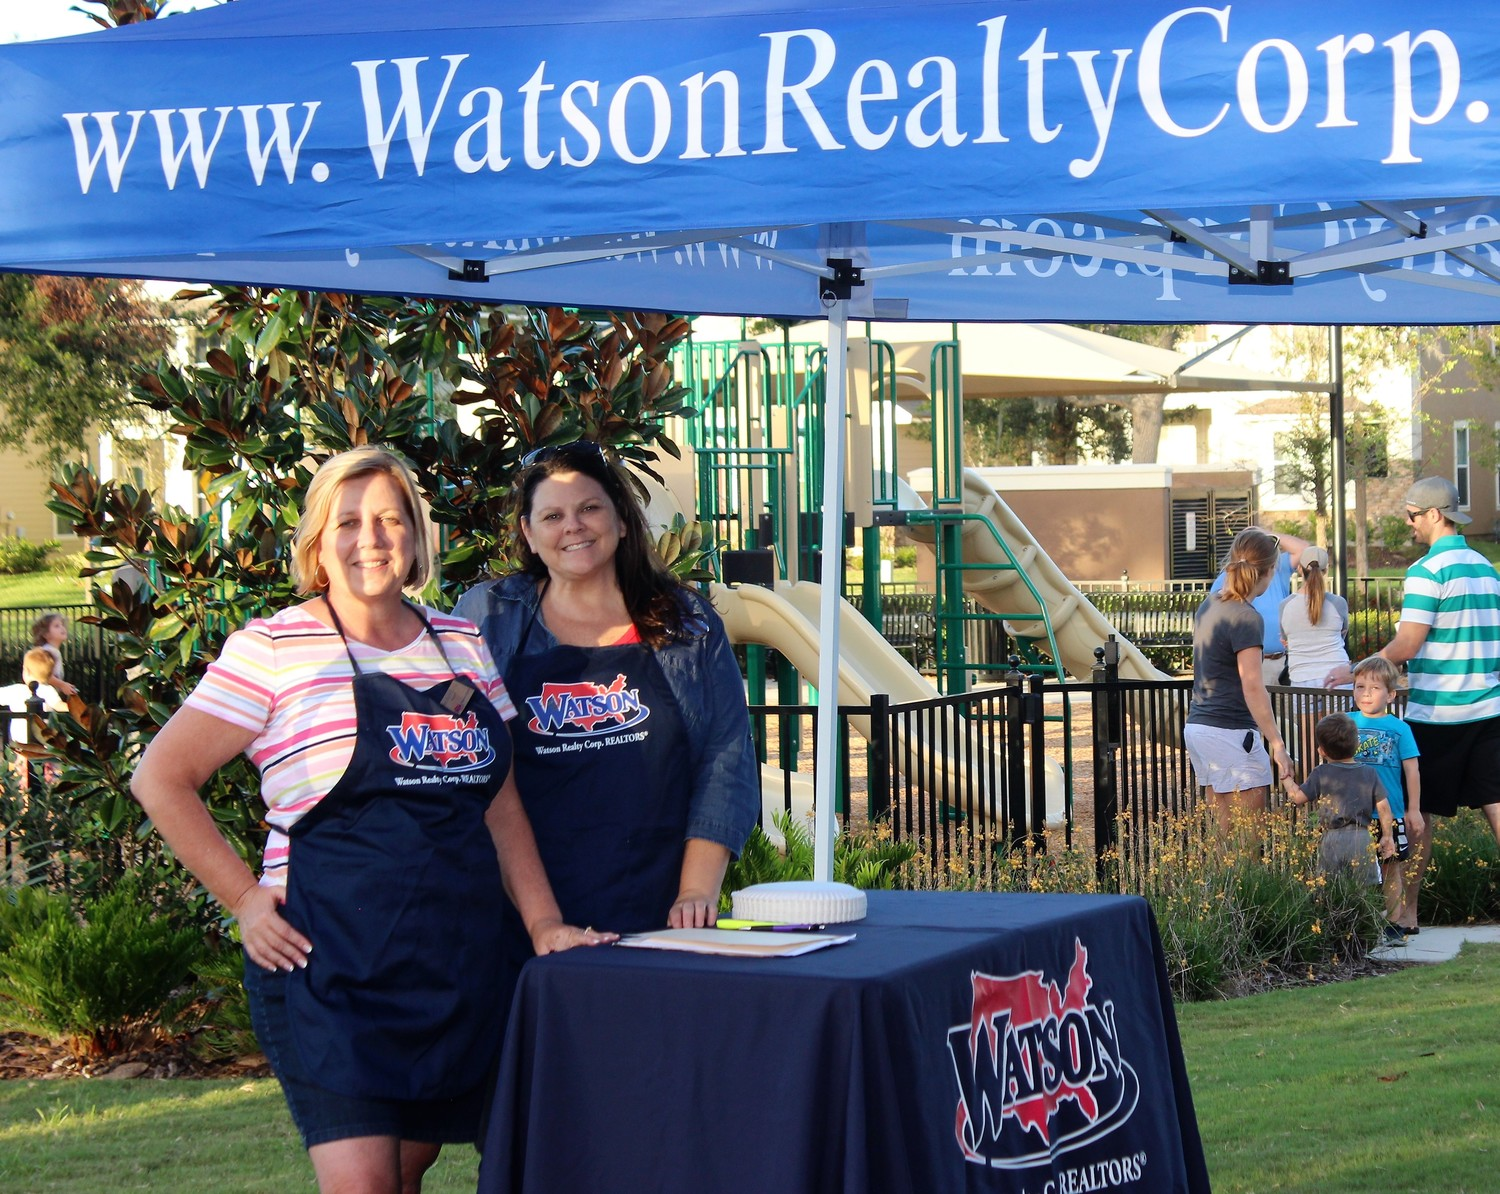 Marybeth Murray and Misty Phillips of Watson Realty Corp.